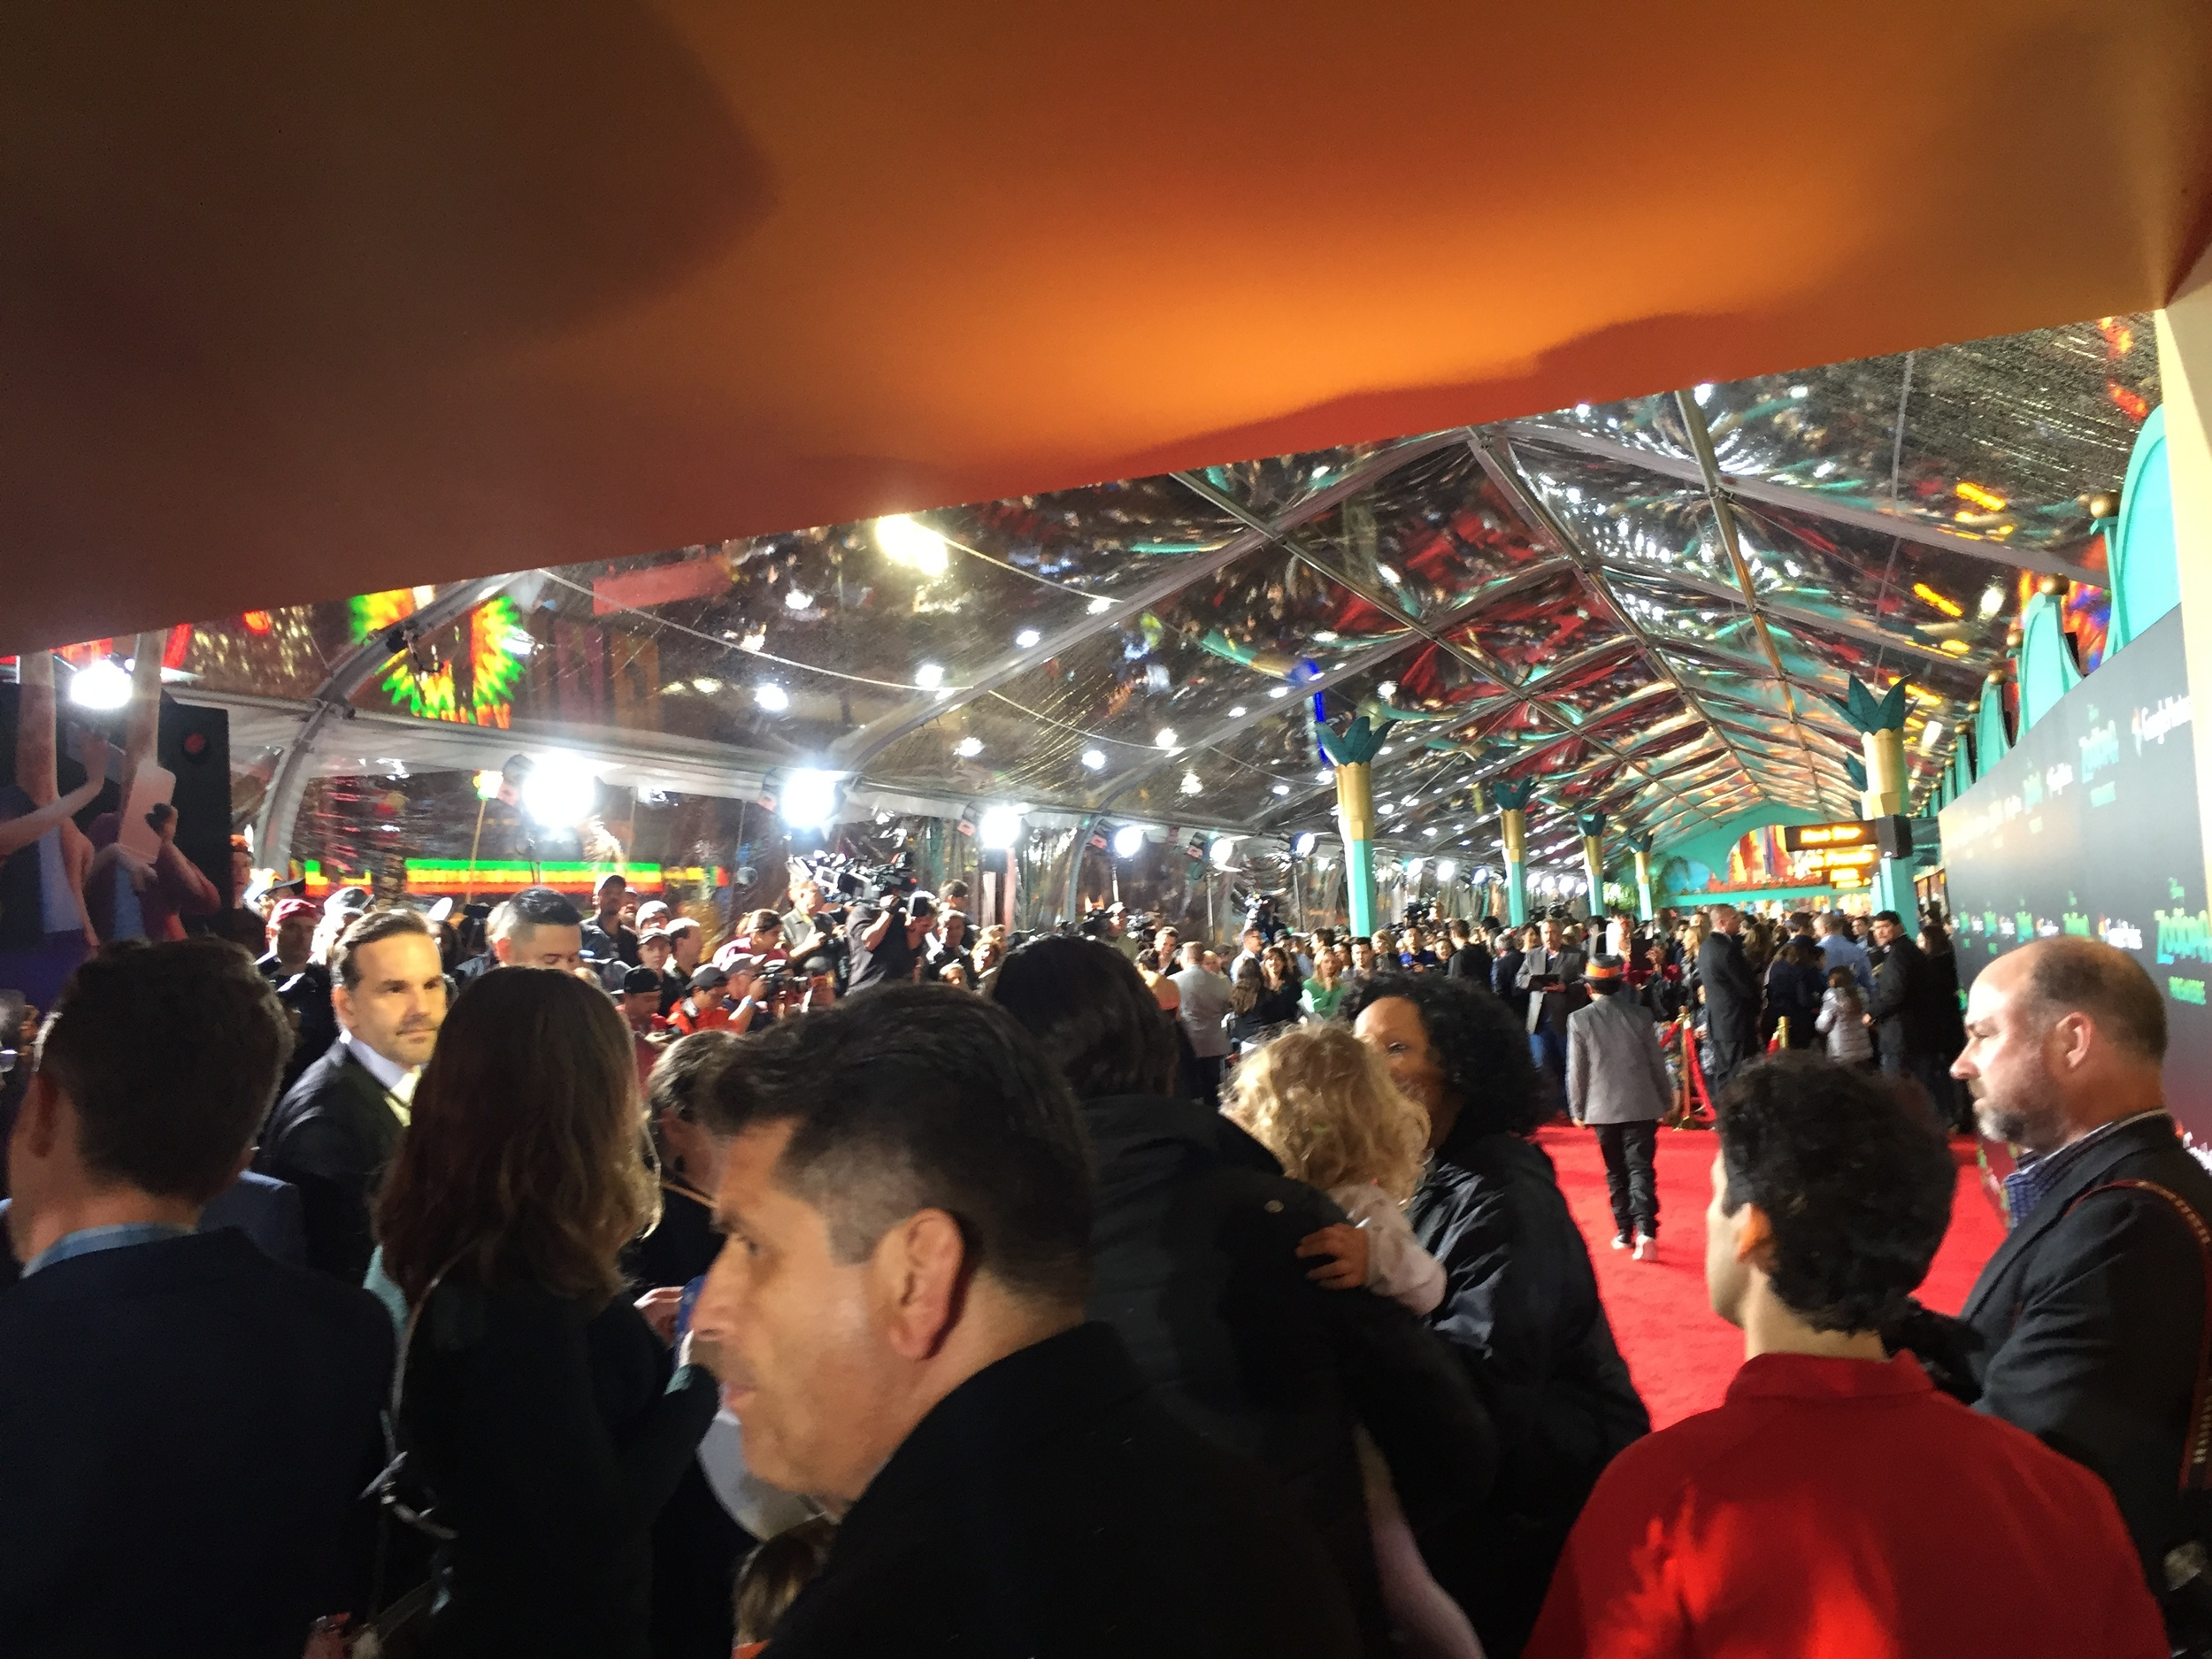 Red Carpet craziness at the Zootopia premiere.